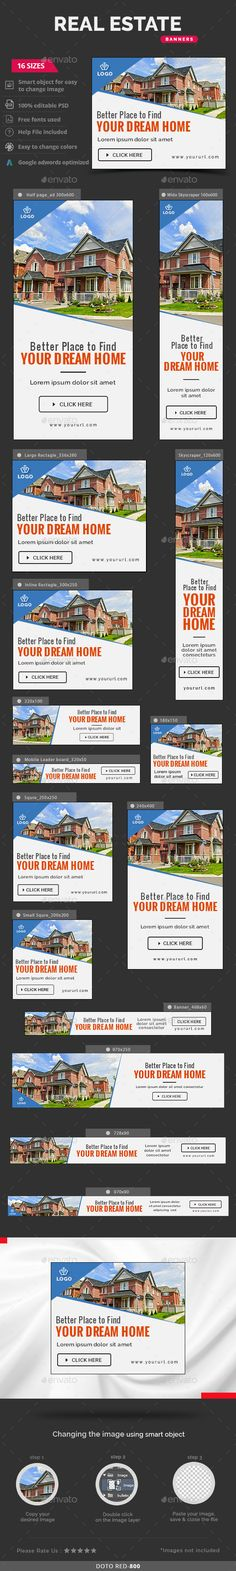 Real Estate Web Banners Template PSD #design #ads Download: http://graphicriver.net/item/real-estate-banners/13461870?ref=ksioks